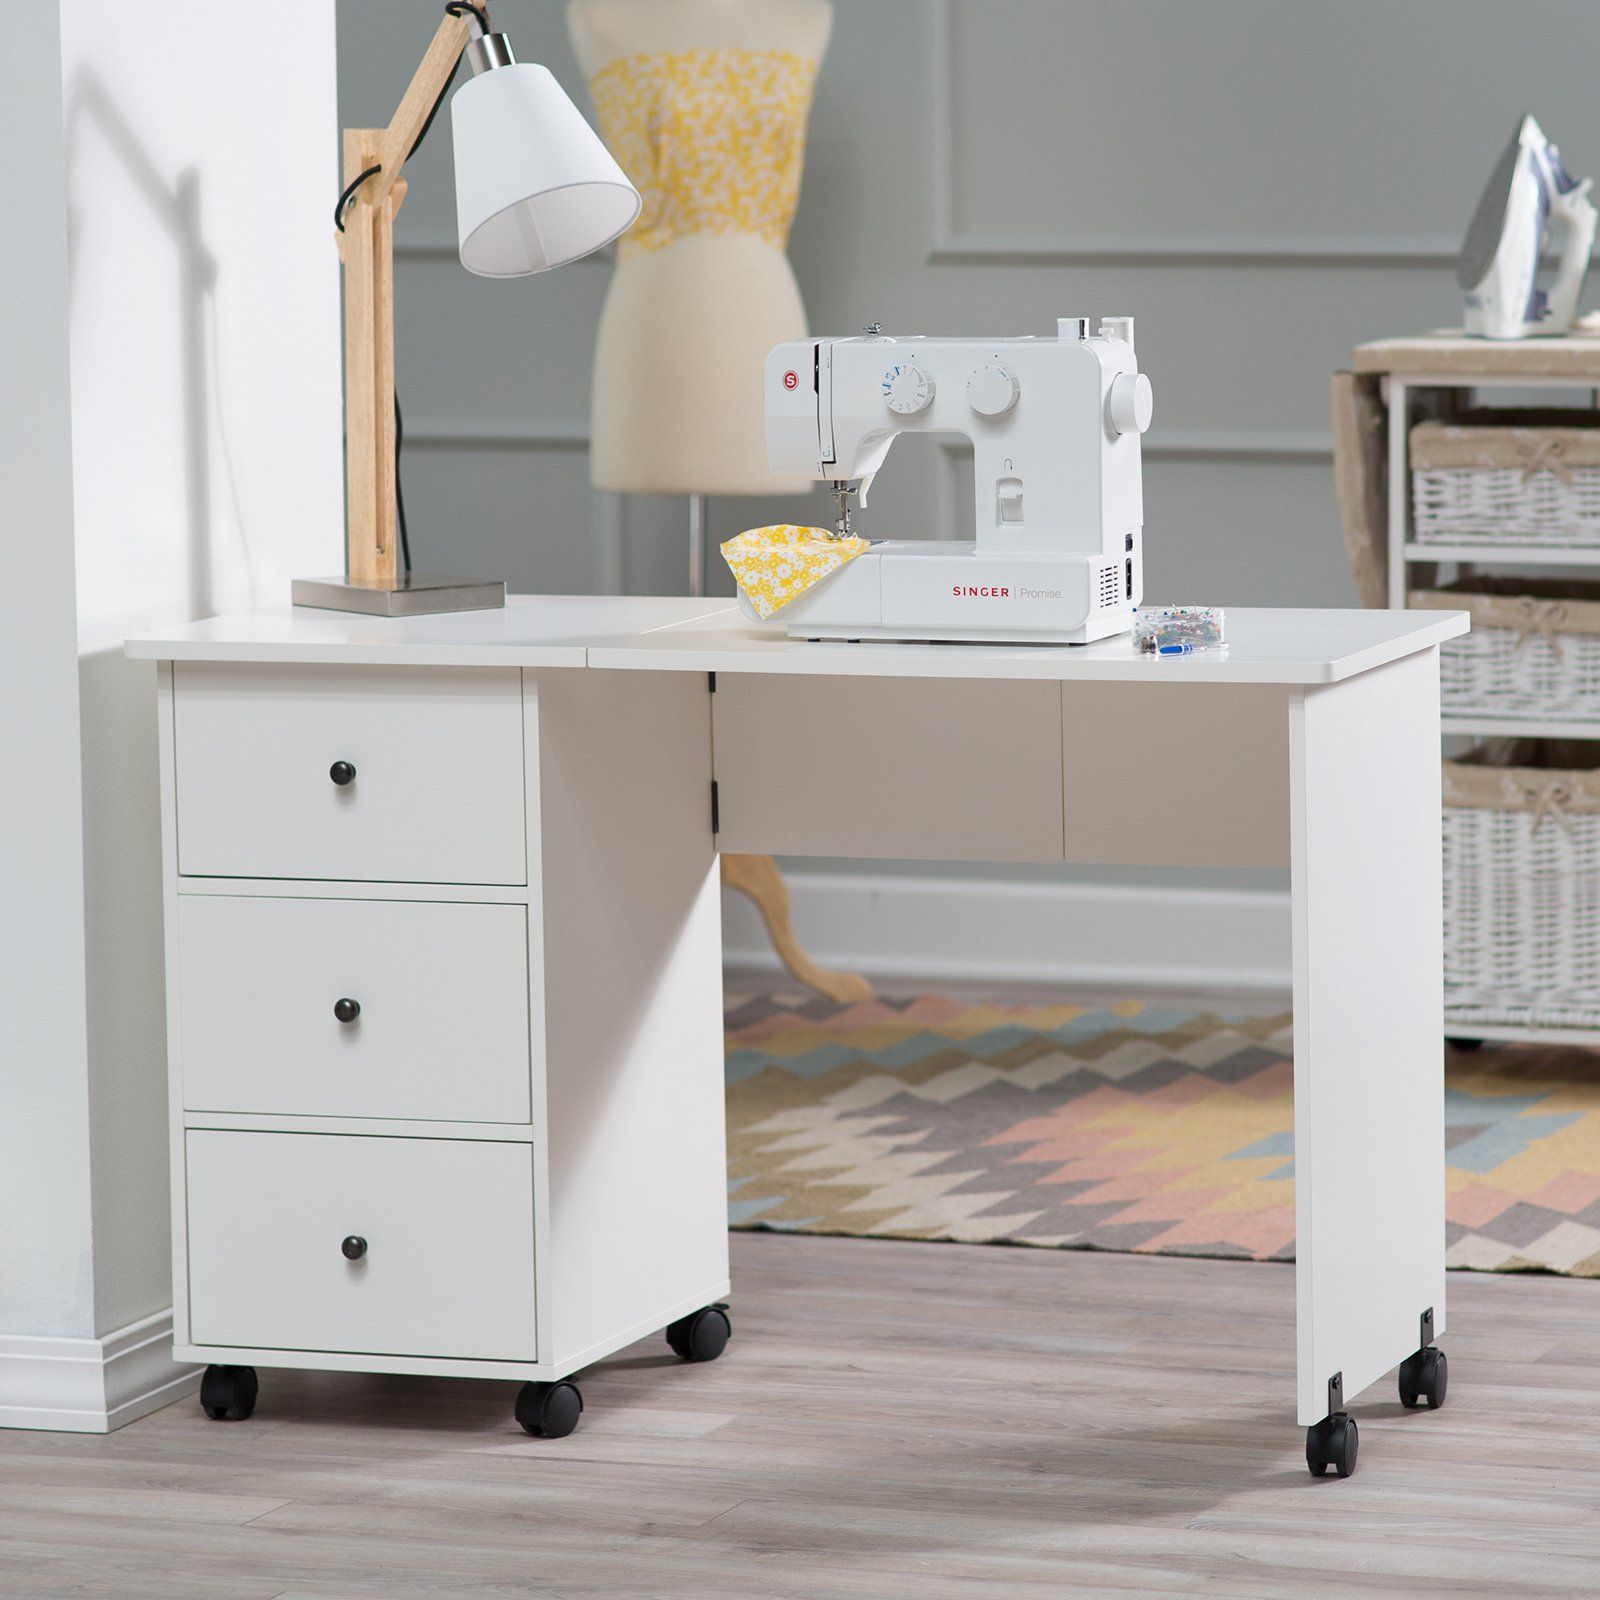 15 Diy Craft Rooms Inspired By Ikea My List Of Lists Find The Best Diy Home Decor Holiday Diy And Online Tutor In 2020 Sewing Desk Sewing Furniture Mobile Sewing